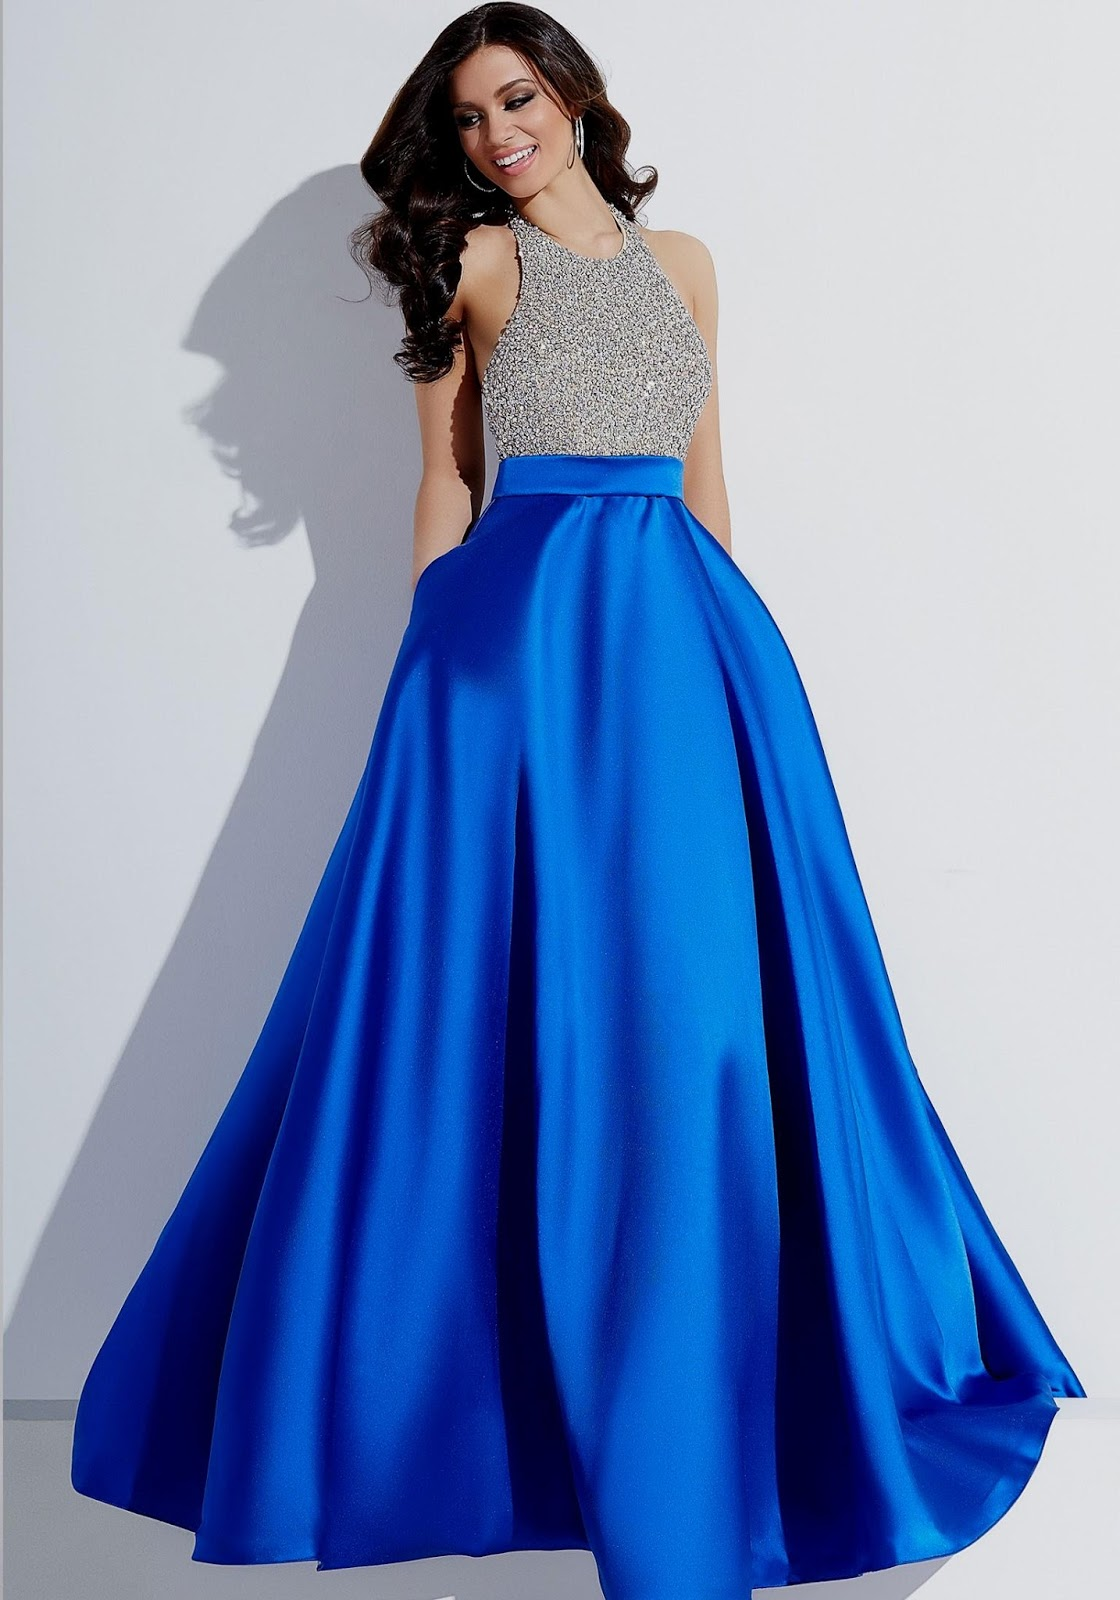 Royal blue bridesmaid dress all about wedding dress for Royal blue and silver wedding dresses